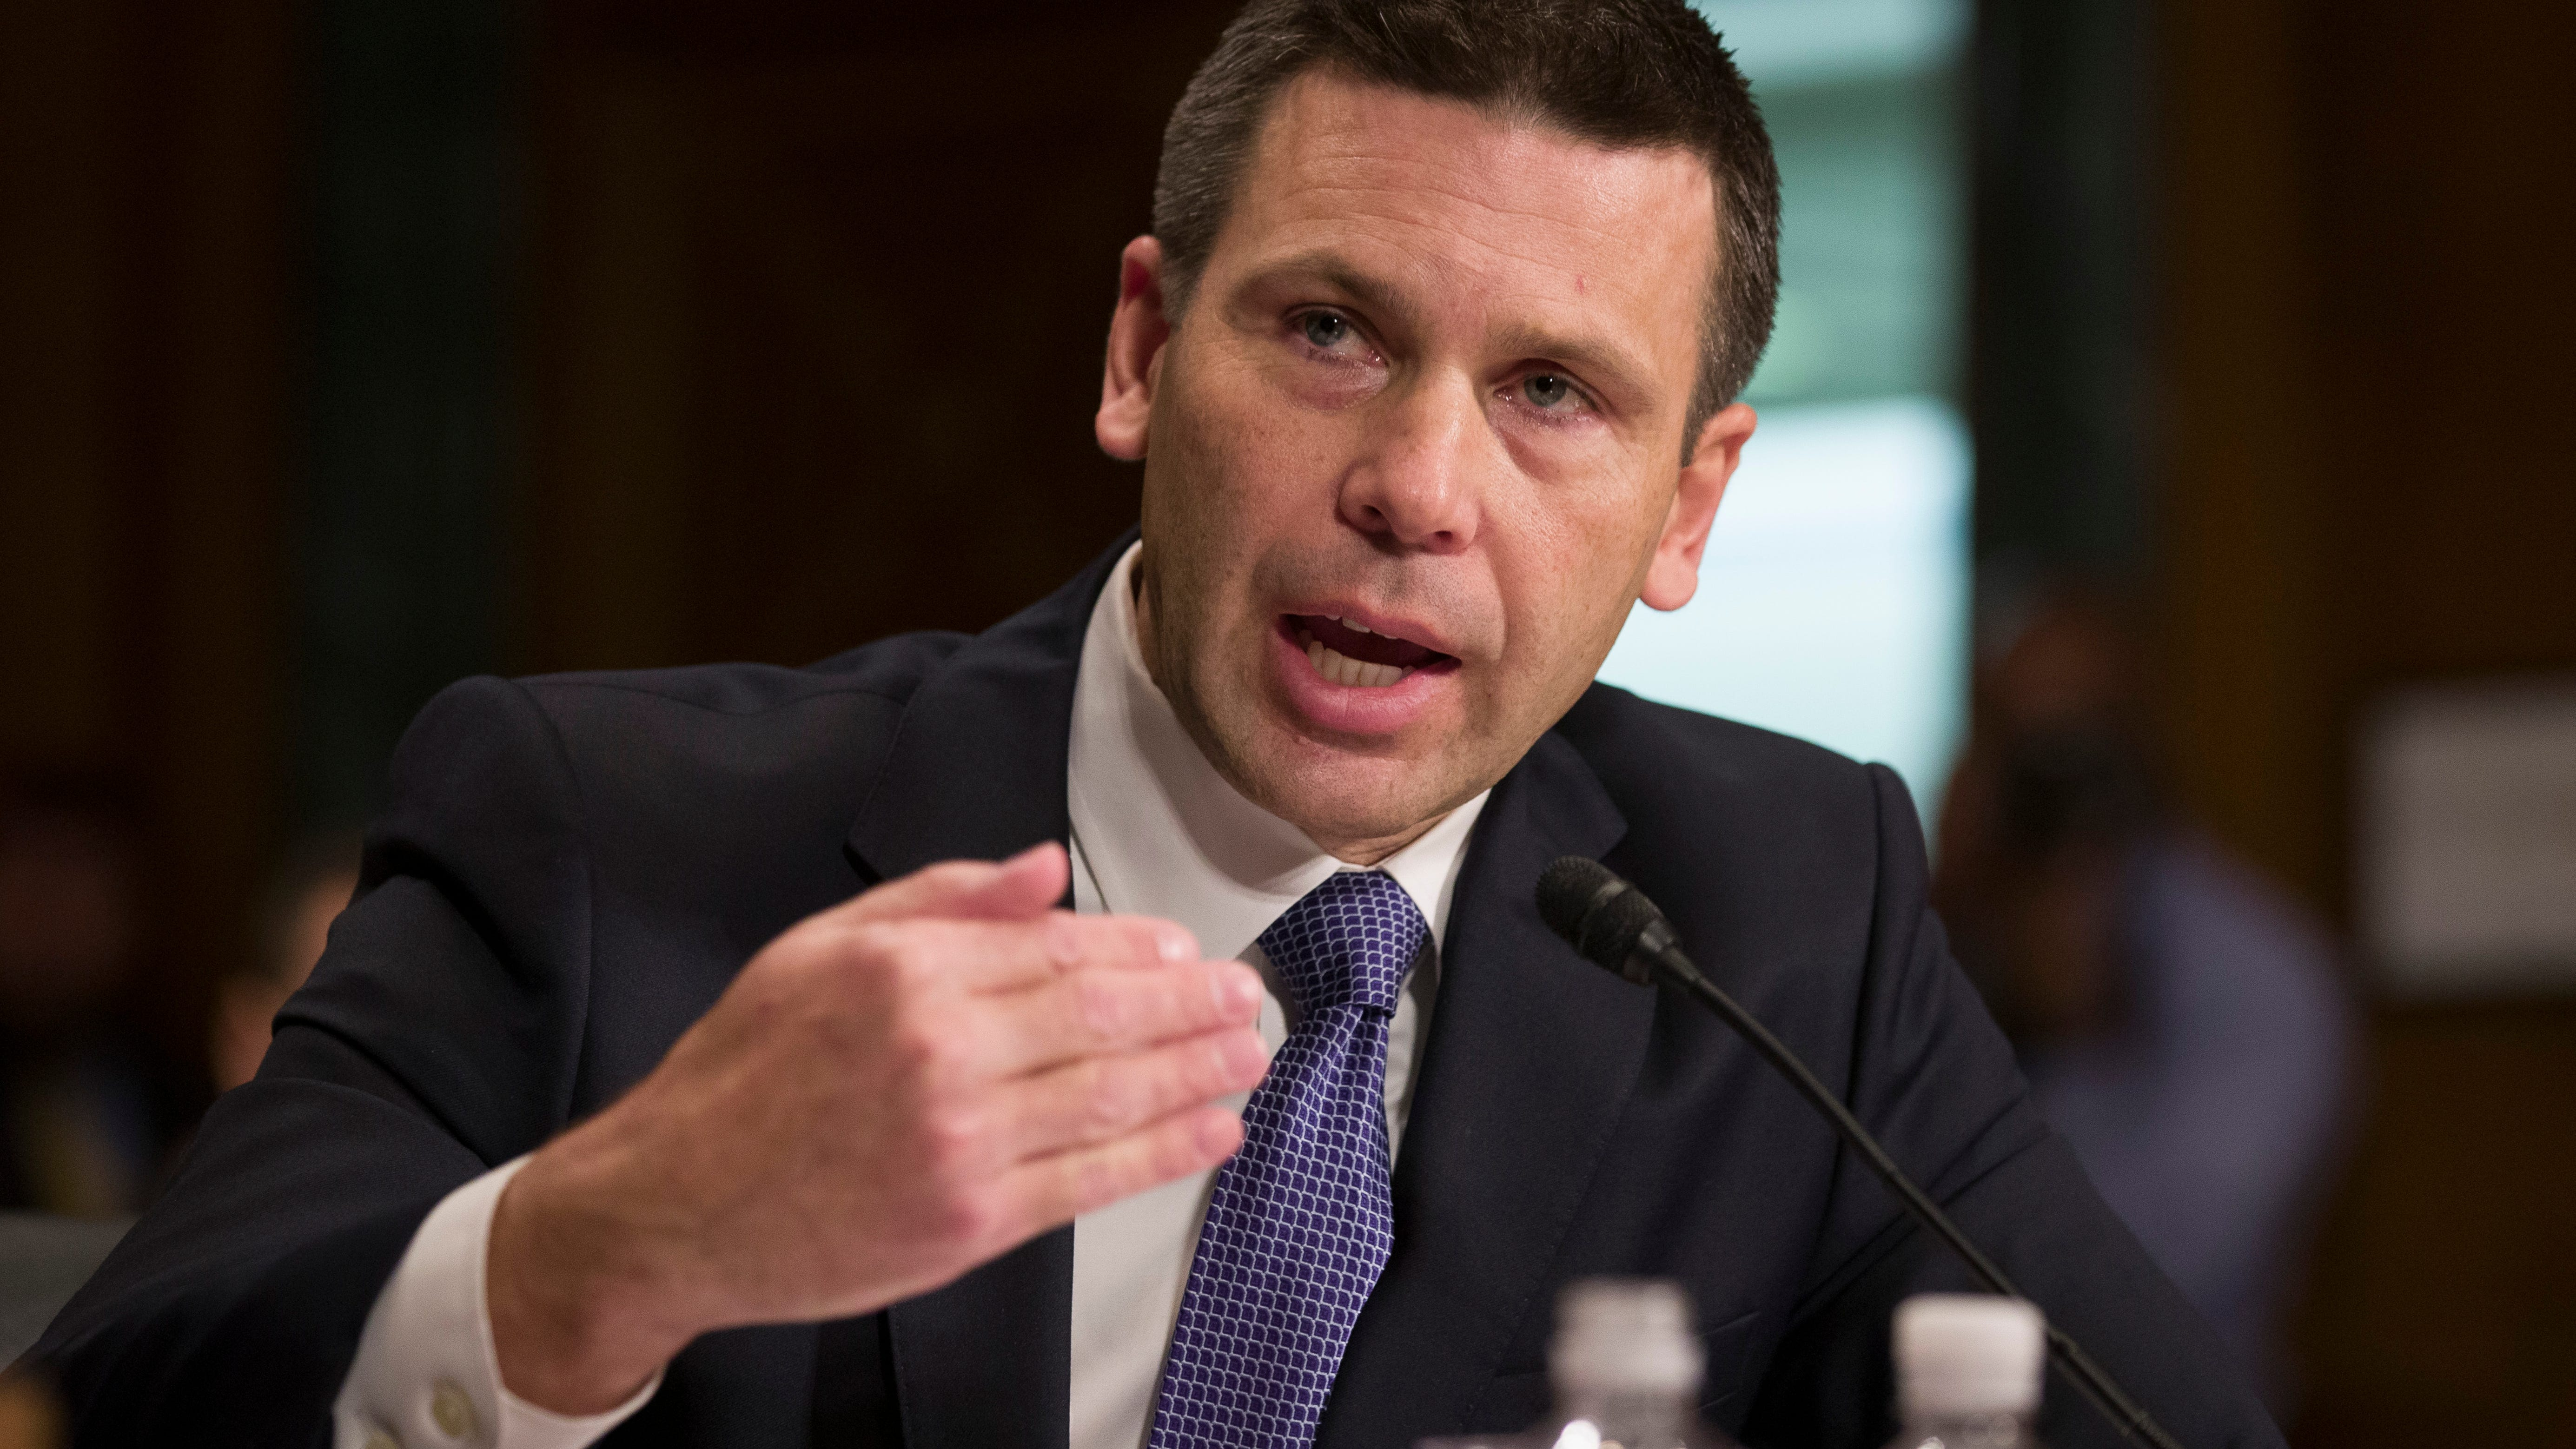 U.S. Customs and Border Protection Commissioner Kevin McAleenan speaks during a hearing of the Senate Judiciary Committee on oversight of Customs and Border Protection's response to the smuggling of persons at the southern border, in Washington, March 6, 2019.   President Donald Trump said in a tweet on April 7, 2019, that McAleenan will become the acting head of the Department of Homeland Security, after he accepted the resignation of Homeland Security Secretary Kirstjen Nielsen.